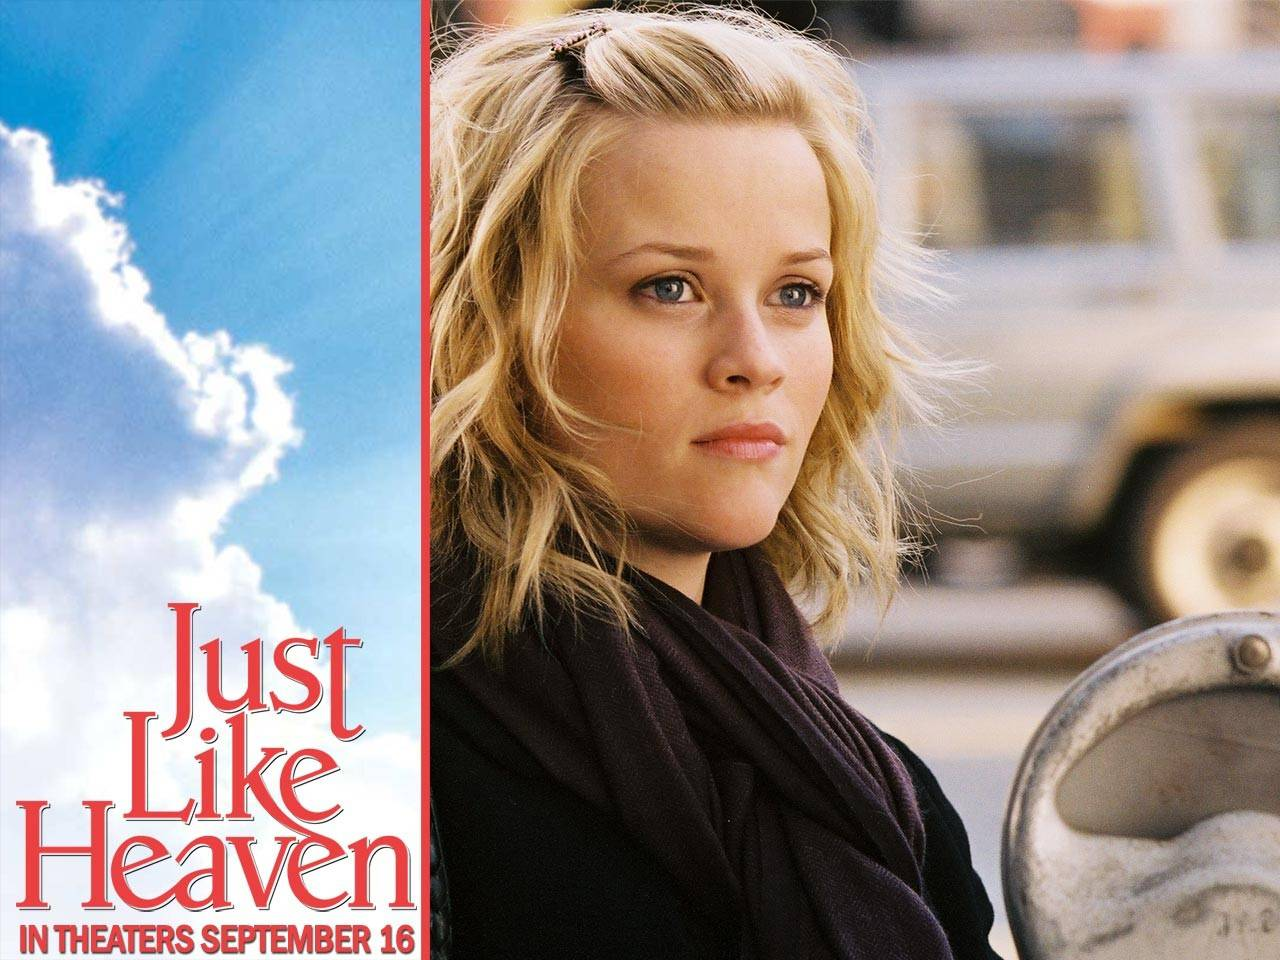 Se solo fosse vero (Just Like Heaven) - Elizabeth Masterson (Reese Witherspoon) - David Abbott (Mark Ruffalo)